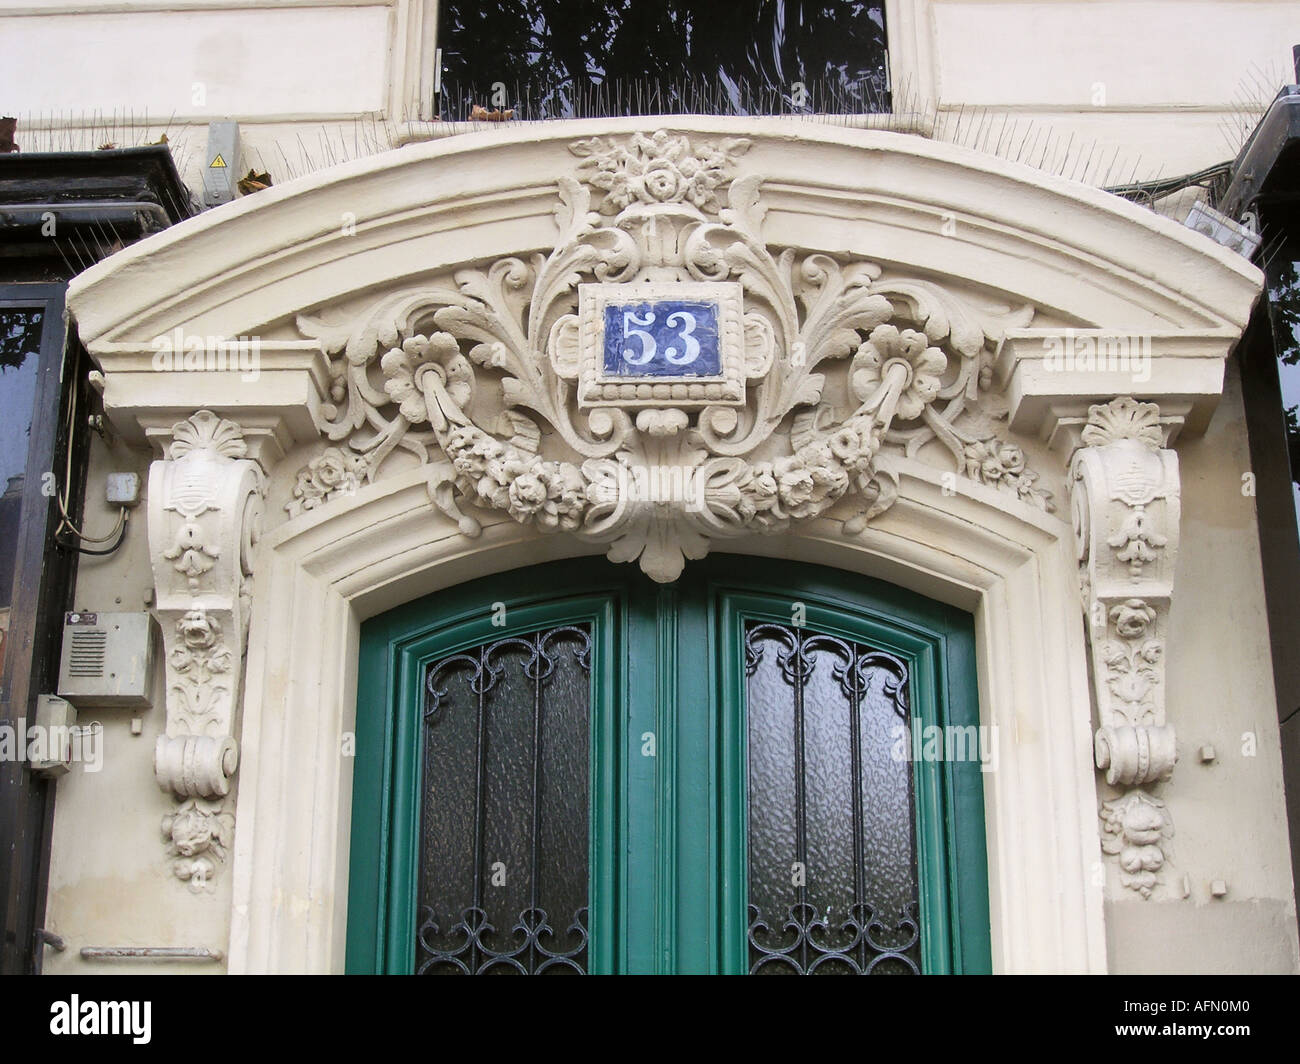 Decorated Facade With Front Door Of House Number 53 In Boulevard Voltaire  11e Arr Paris France